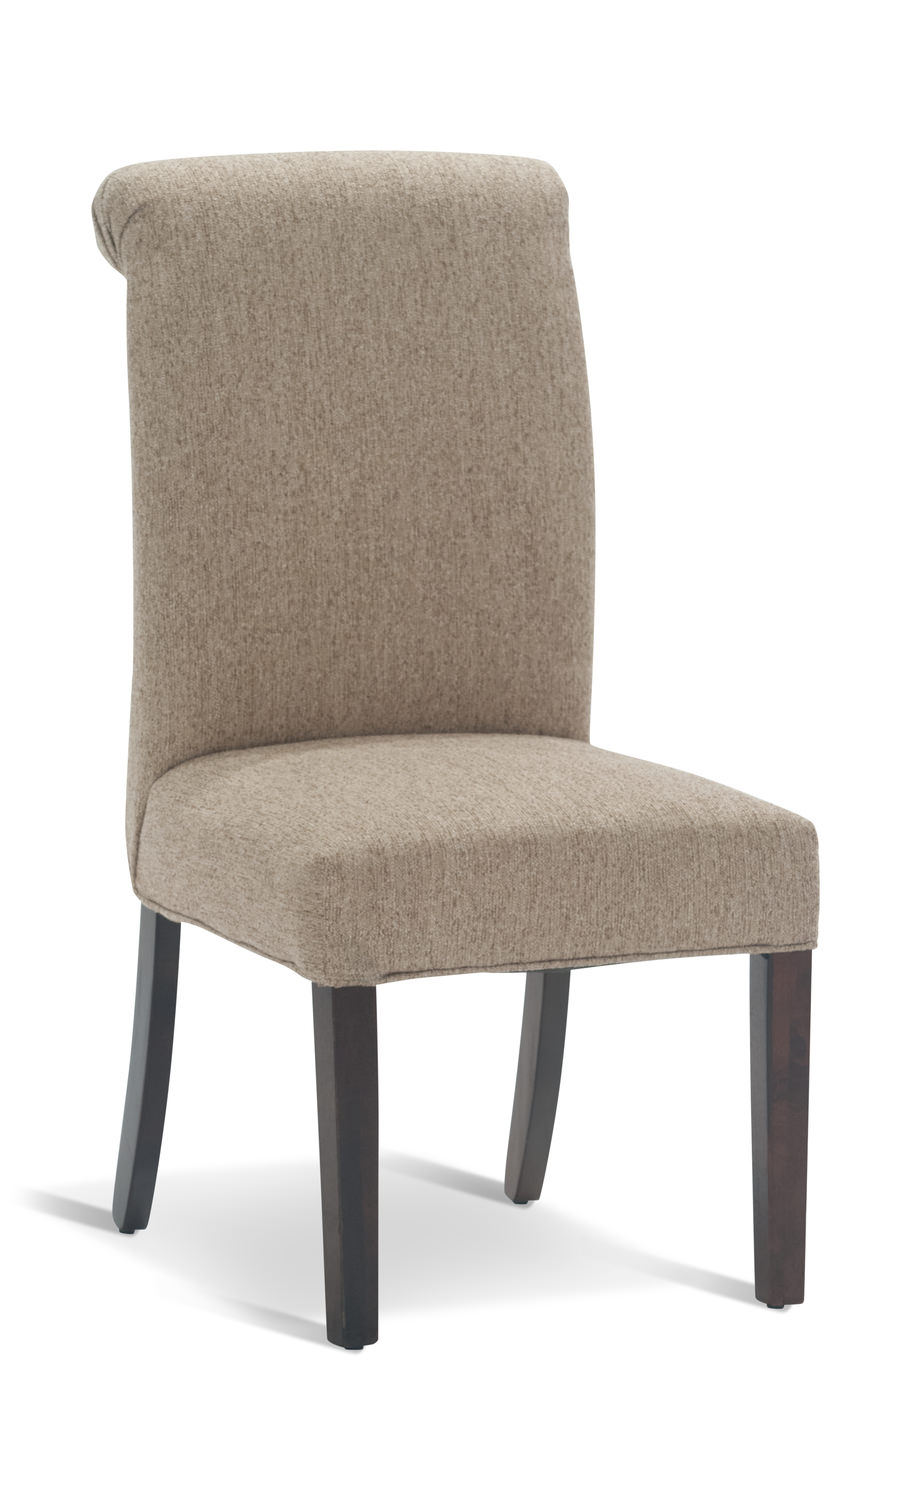 Ava Accent Roll Back Dining Chair Hom Furniture